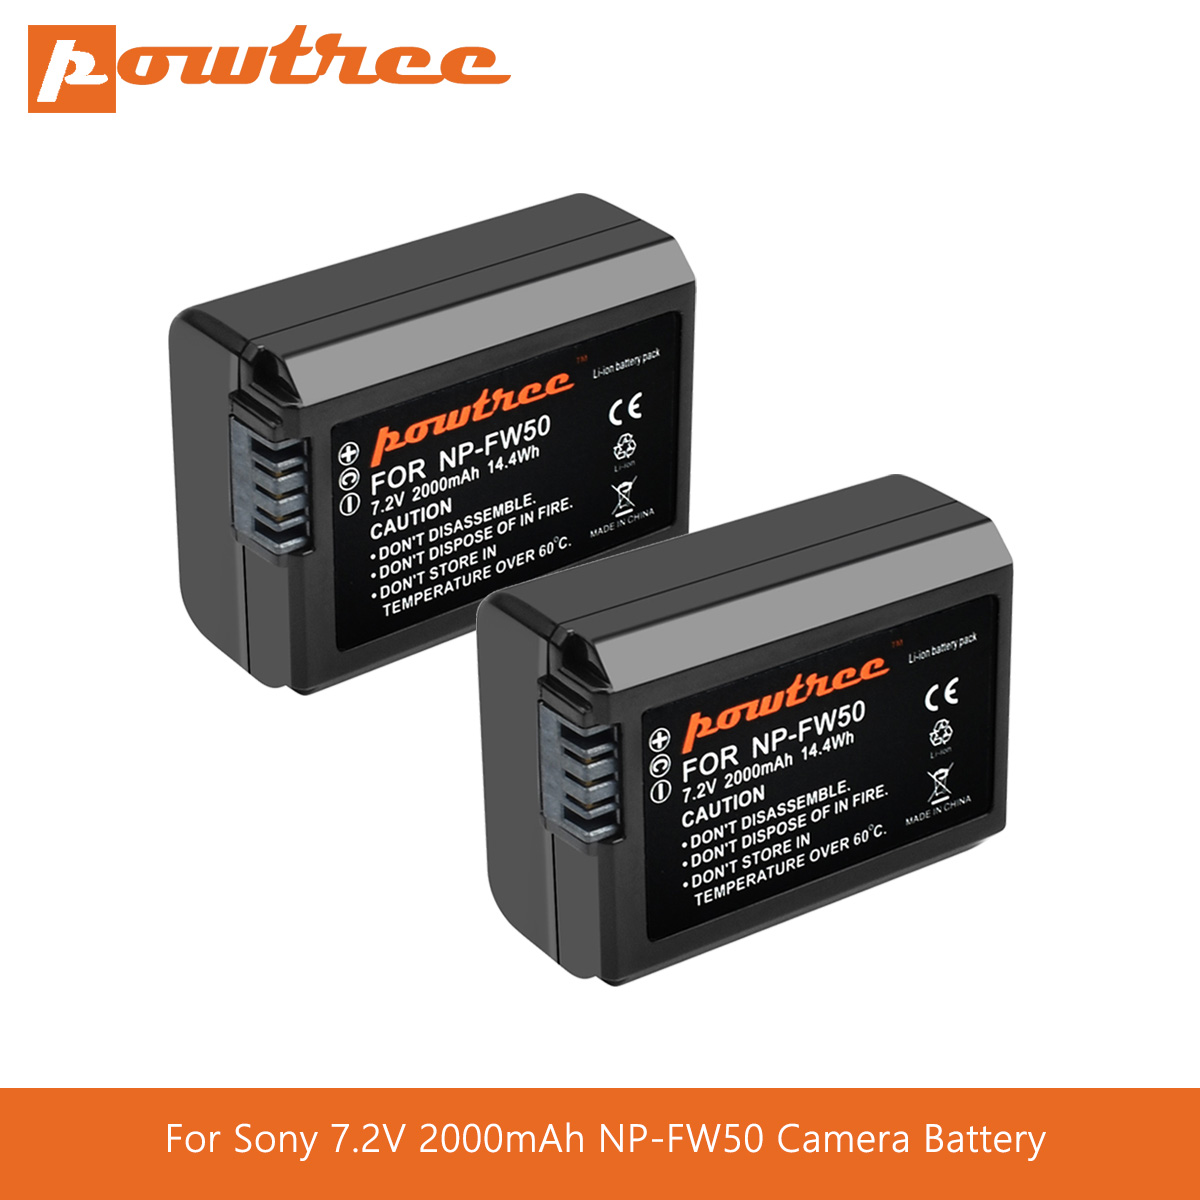 Powtree For <font><b>Sony</b></font> 7.2V 2000mAh NP-FW50 NPFW50 NP FW50 <font><b>Camera</b></font> Battery For Alpha <font><b>6500</b></font> 6300 6000 5000 3000 a7R a7S a7S II a7II L70 image